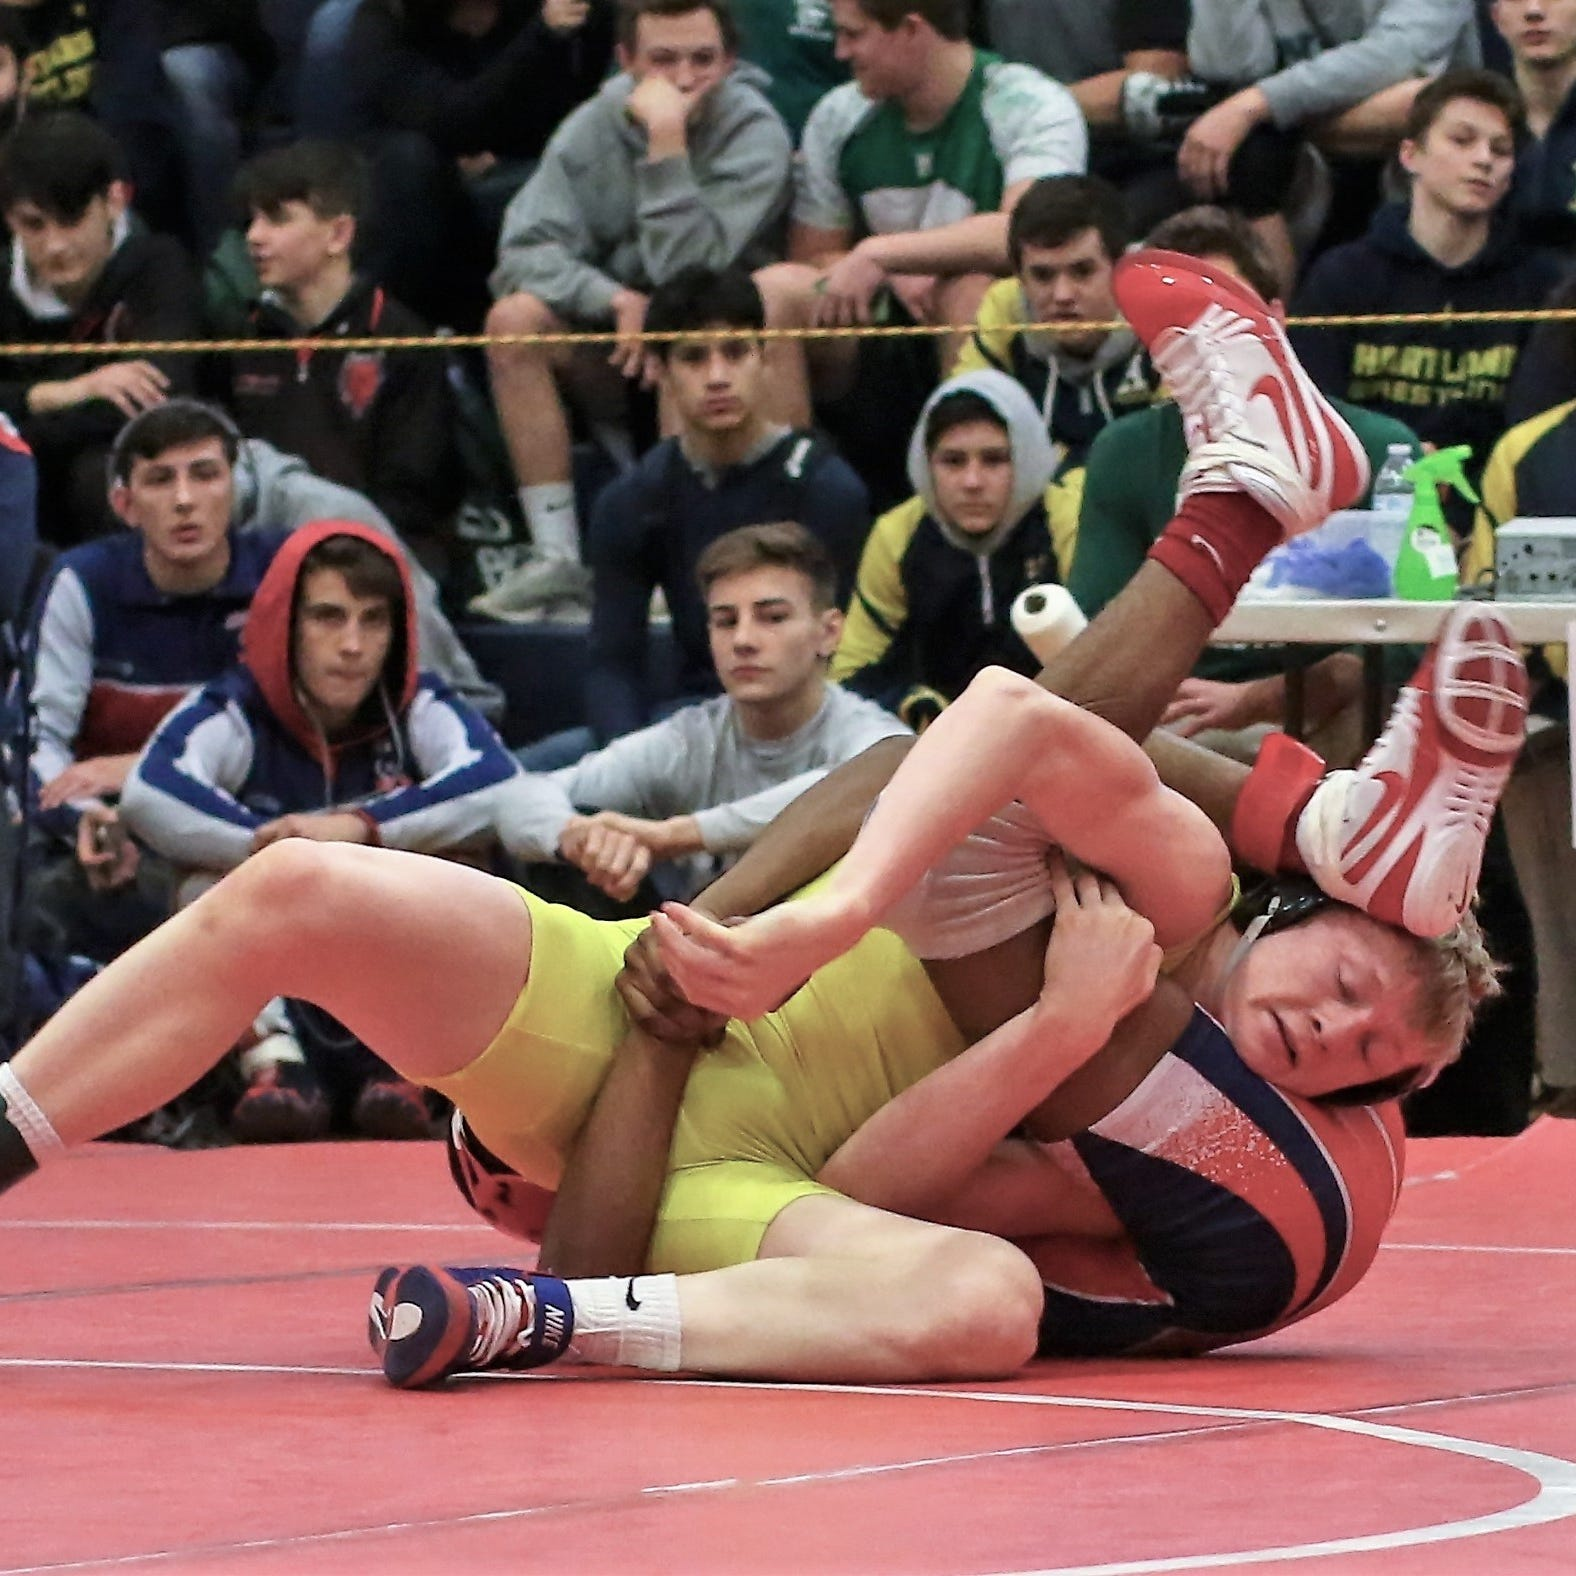 Roundup: Unlikely pins give No. 5 Hartland wrestling win over No. 4 Clarkston